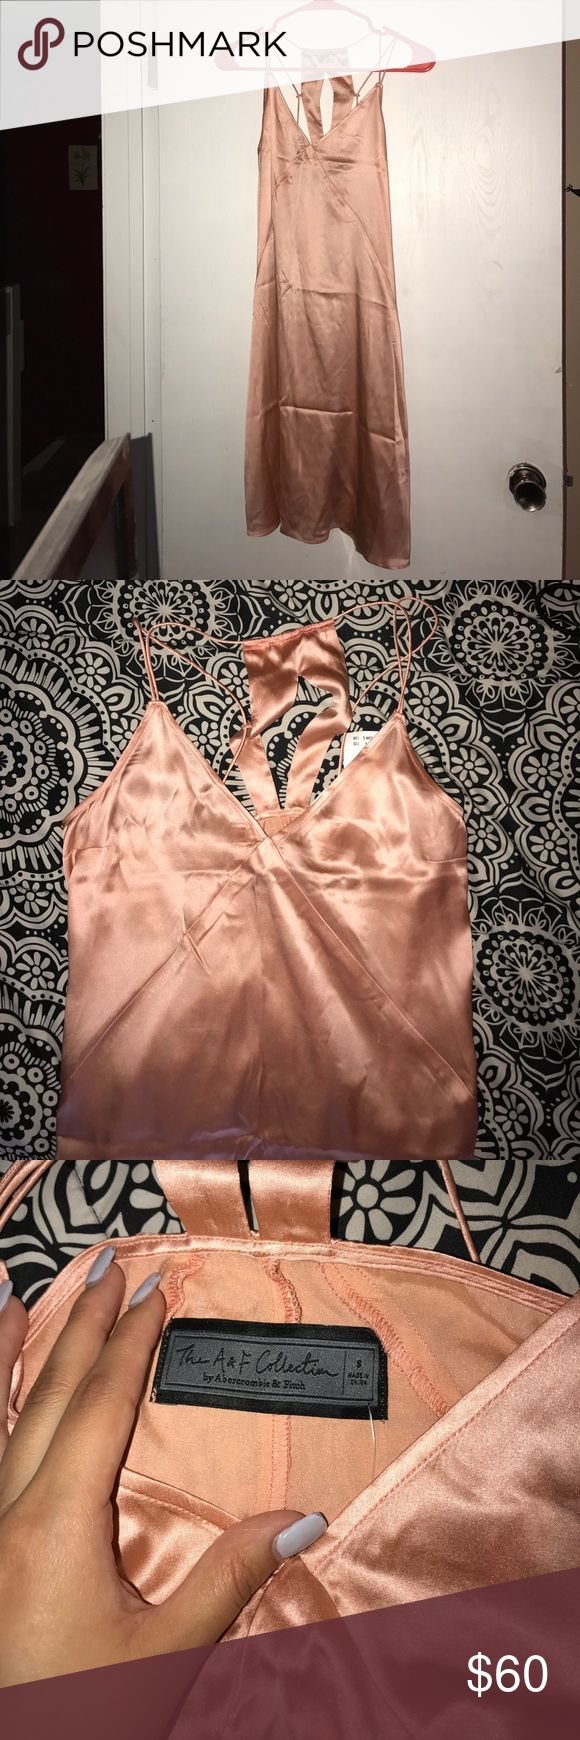 Abercrombie and Fitch silk dress Brand new never worn Abercrombie and Fitch dress super cute if you want to wear this out to a club! Abercrombie & Fitch Dresses Mini